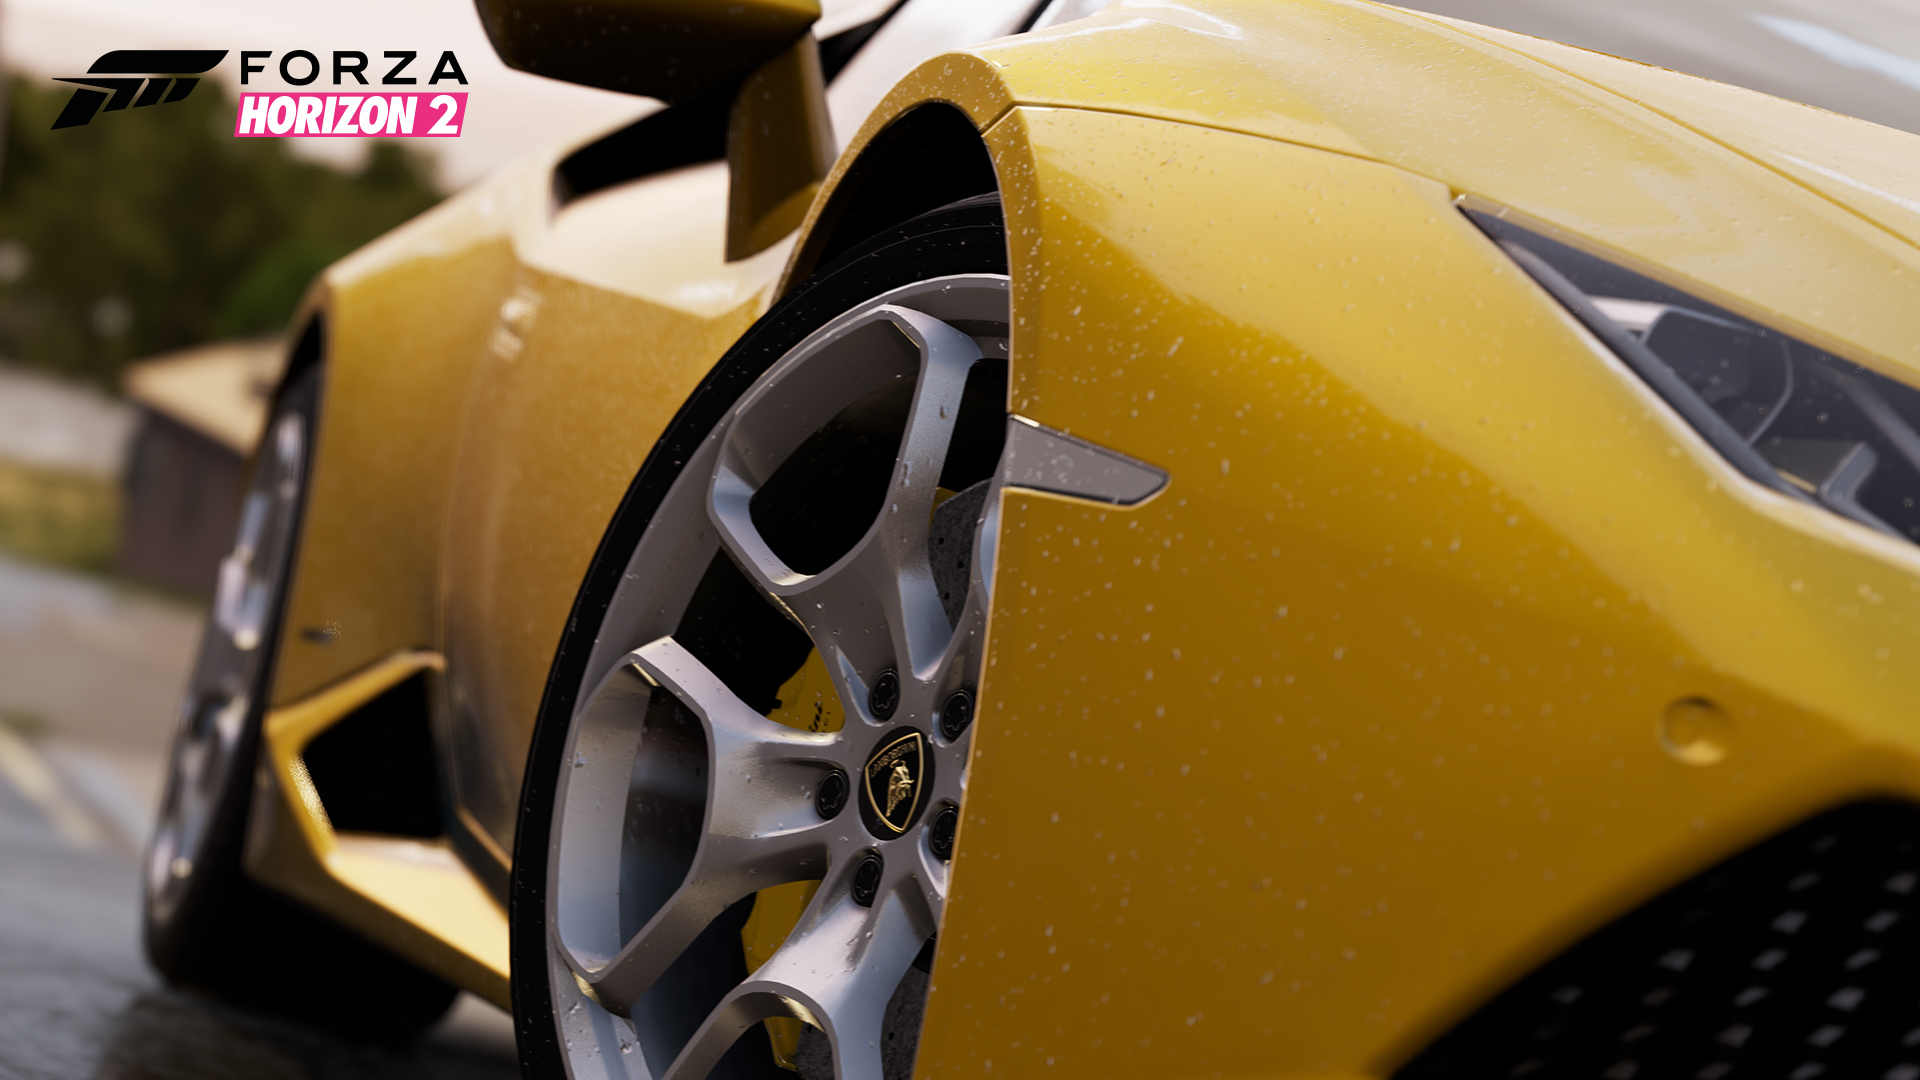 Official Forza Horizon 2 Xbox Lobby Car Club